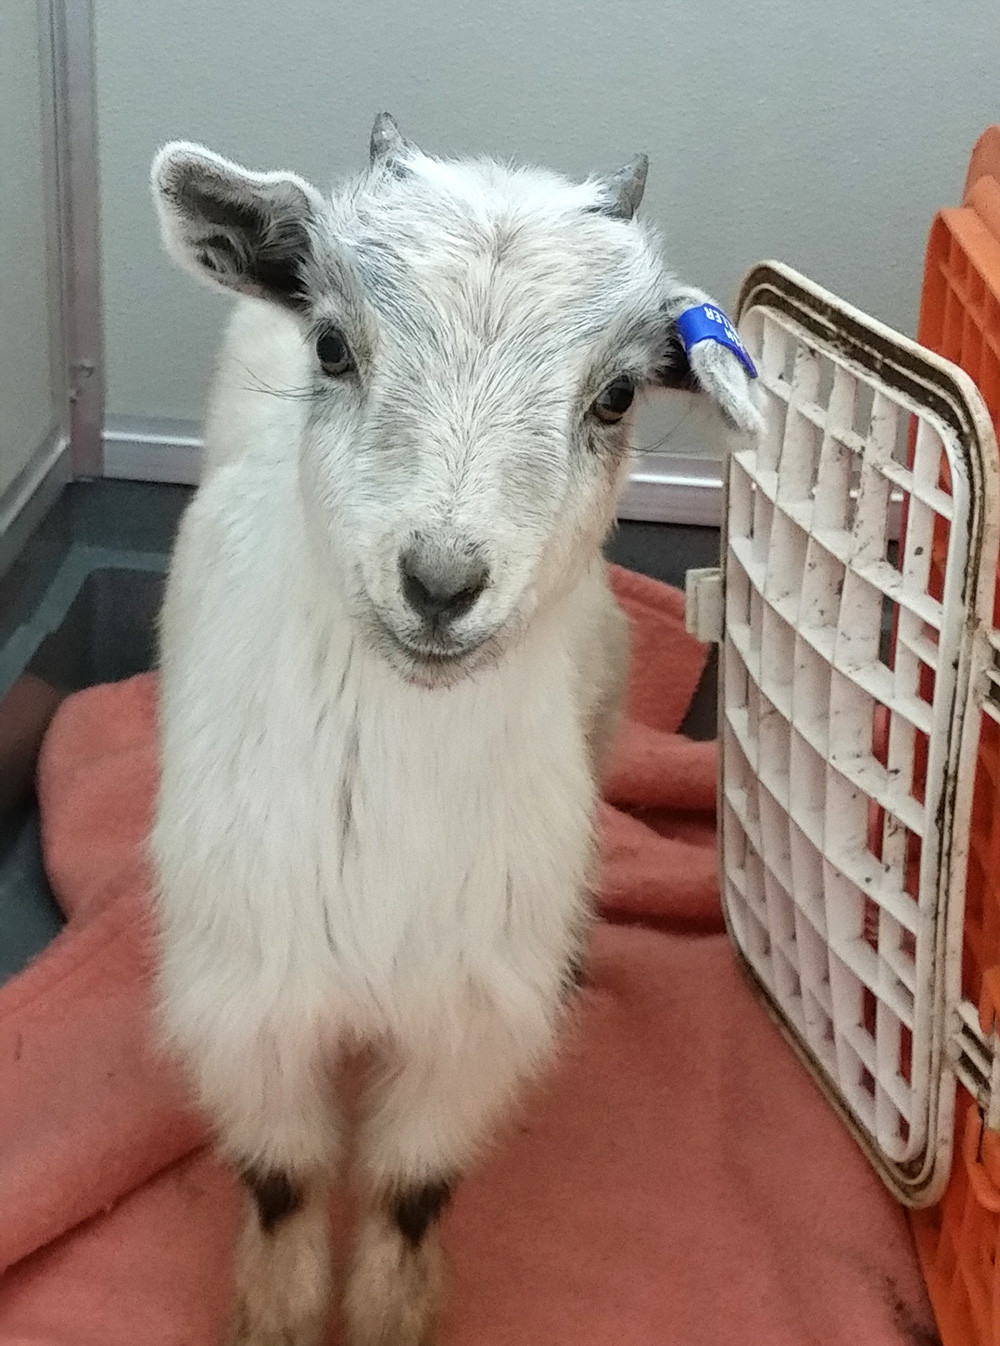 Goat kid stands facing the camera and looking like it is smiling